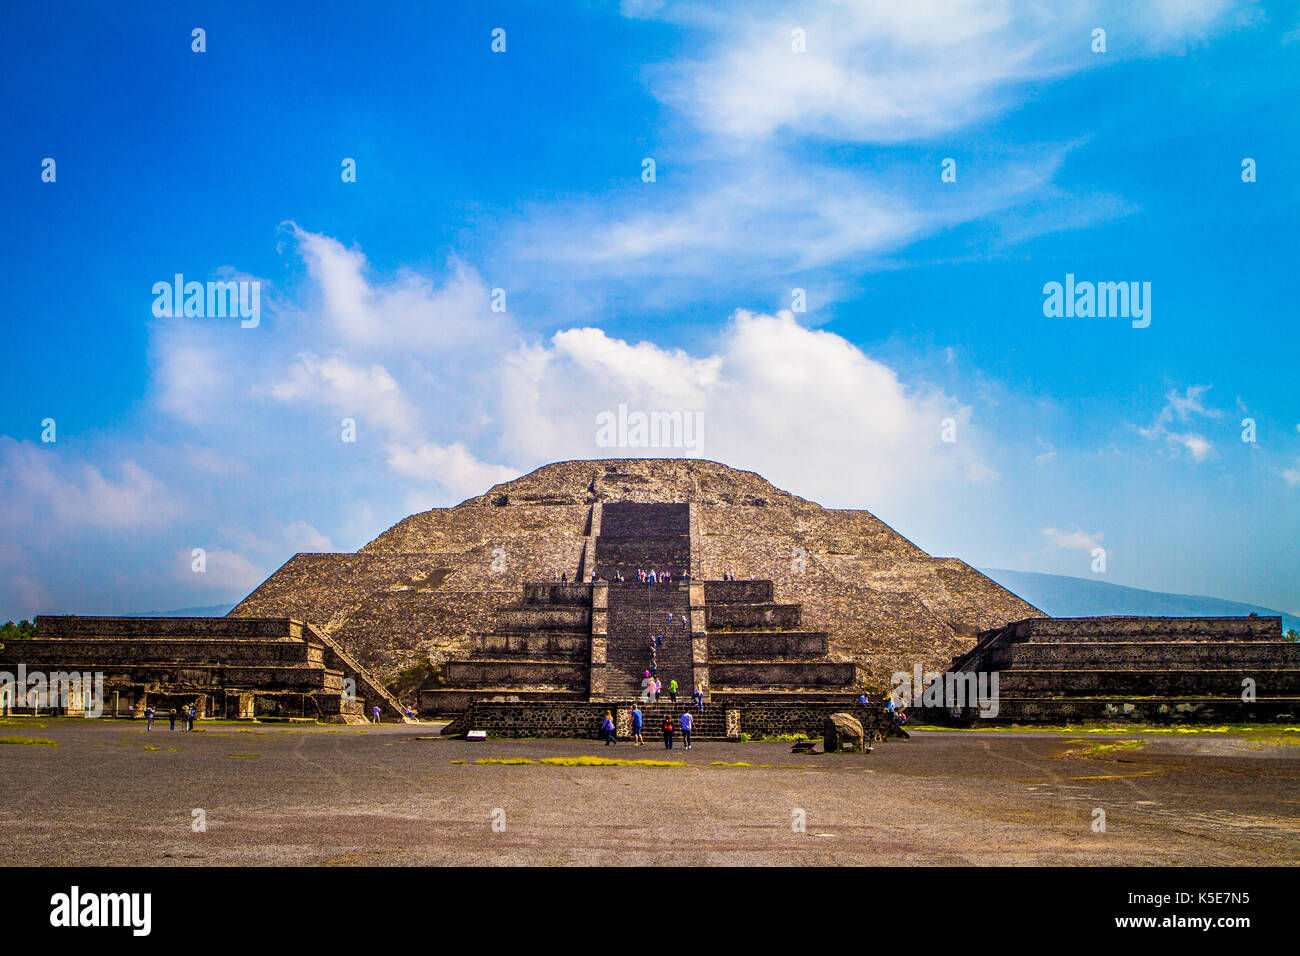 Pyramid of the Moon, Teotihuacan, Mexico - Stock Image